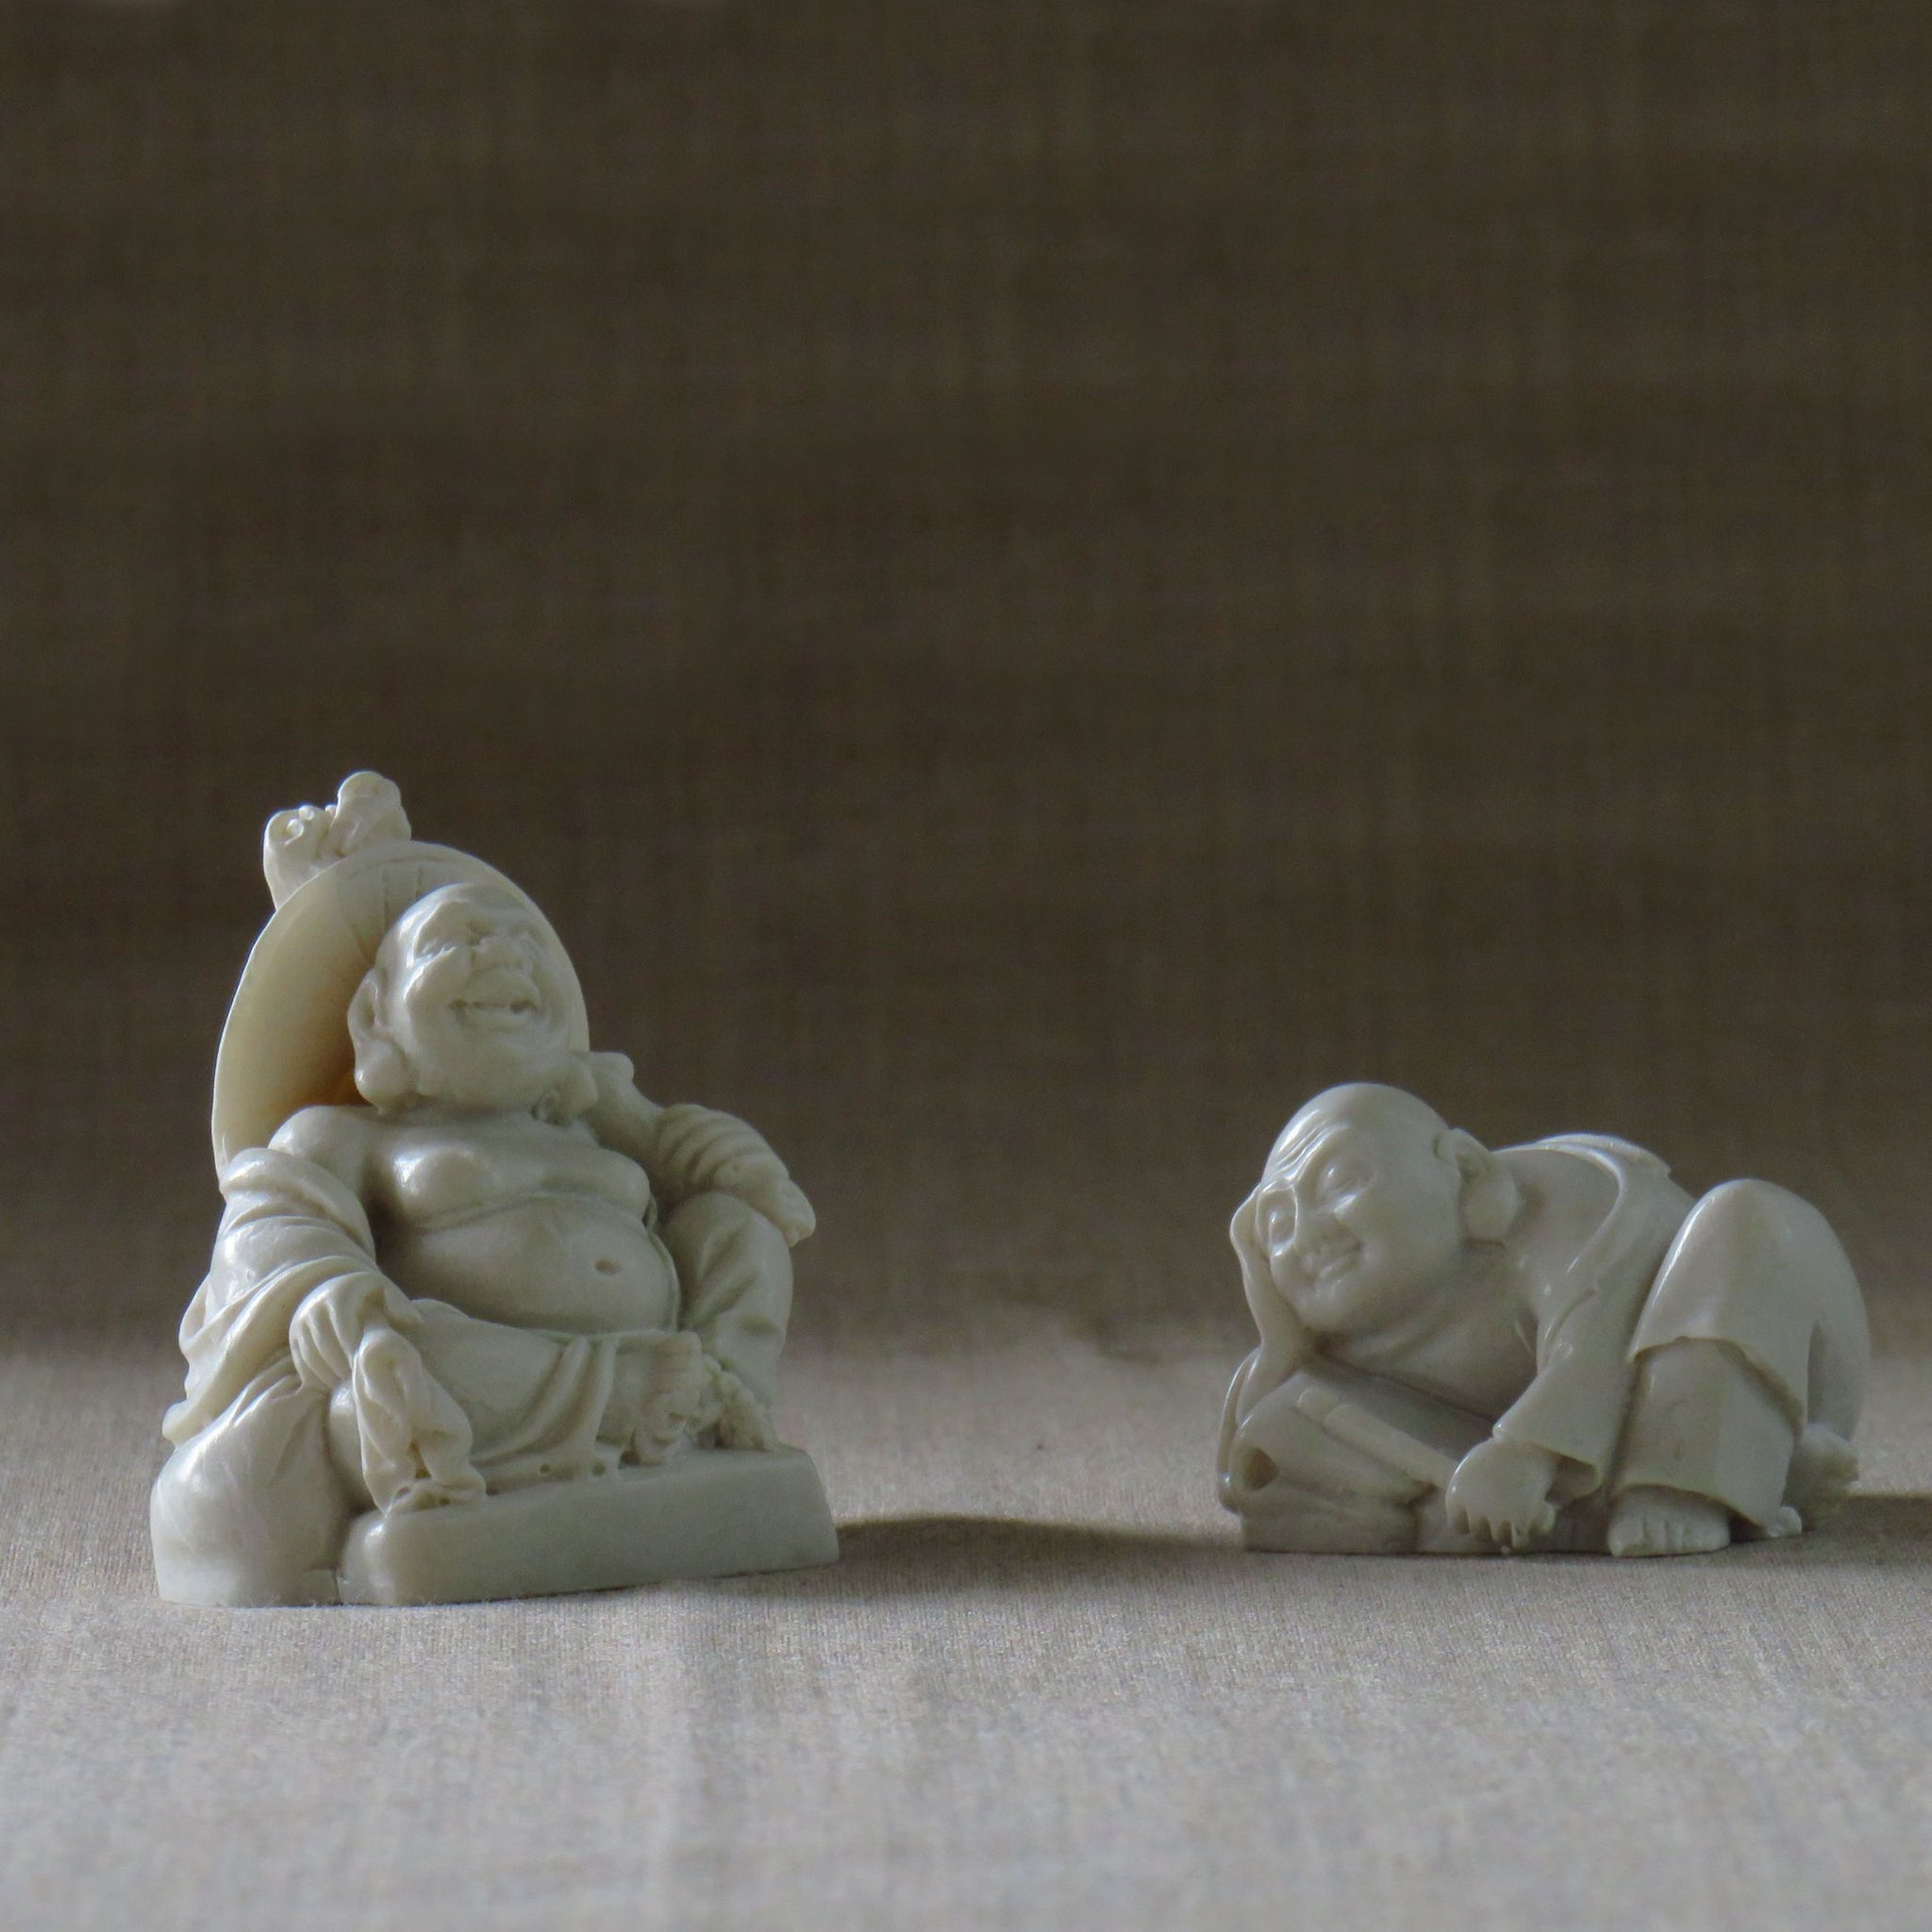 Duo of Fat Bellied Lucky Buddhas